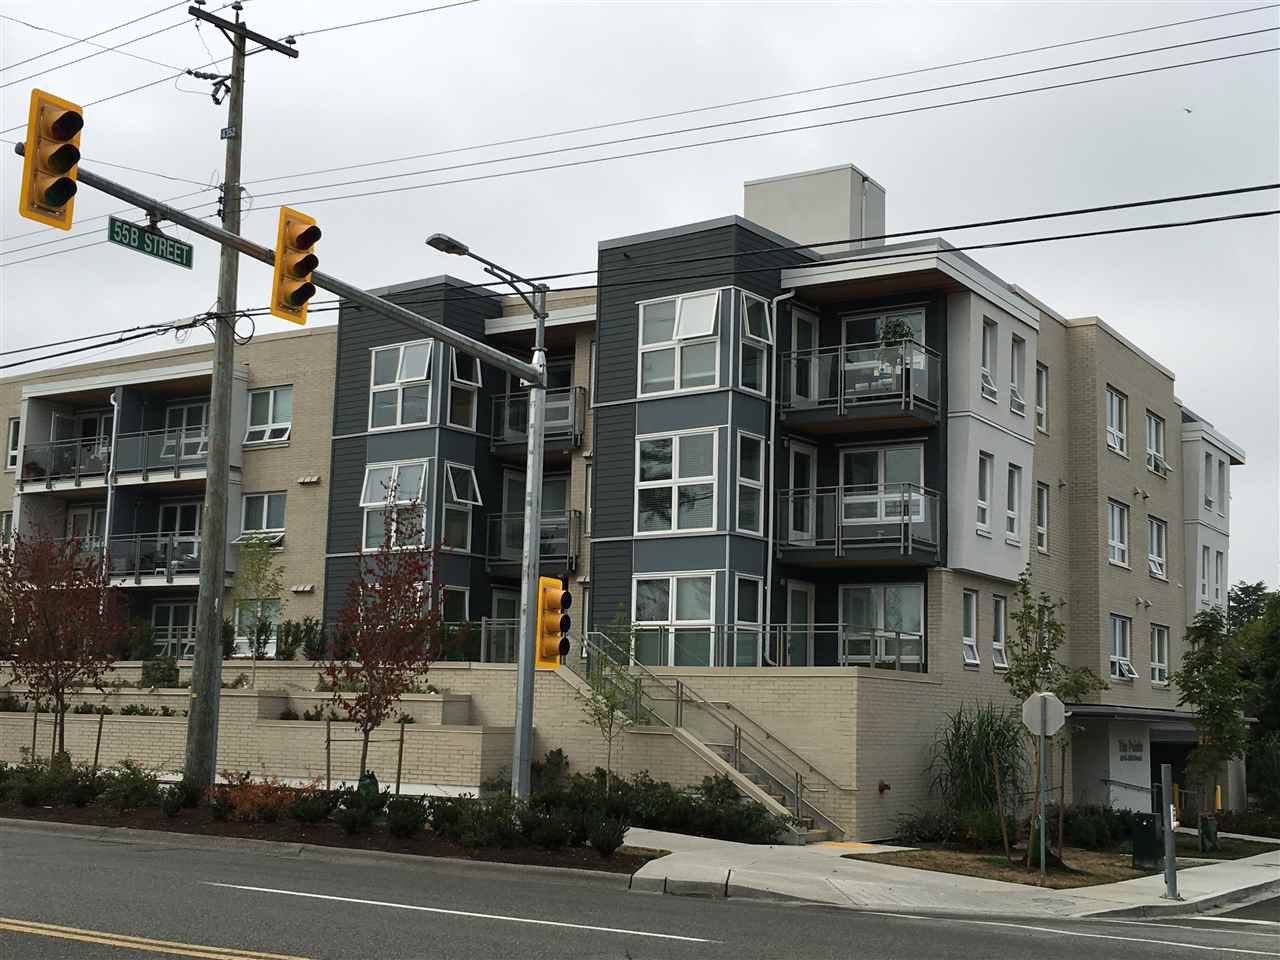 "Main Photo: 307 4815 55B Street in Delta: Hawthorne Condo for sale in ""THE POINTE"" (Ladner)  : MLS®# R2203810"